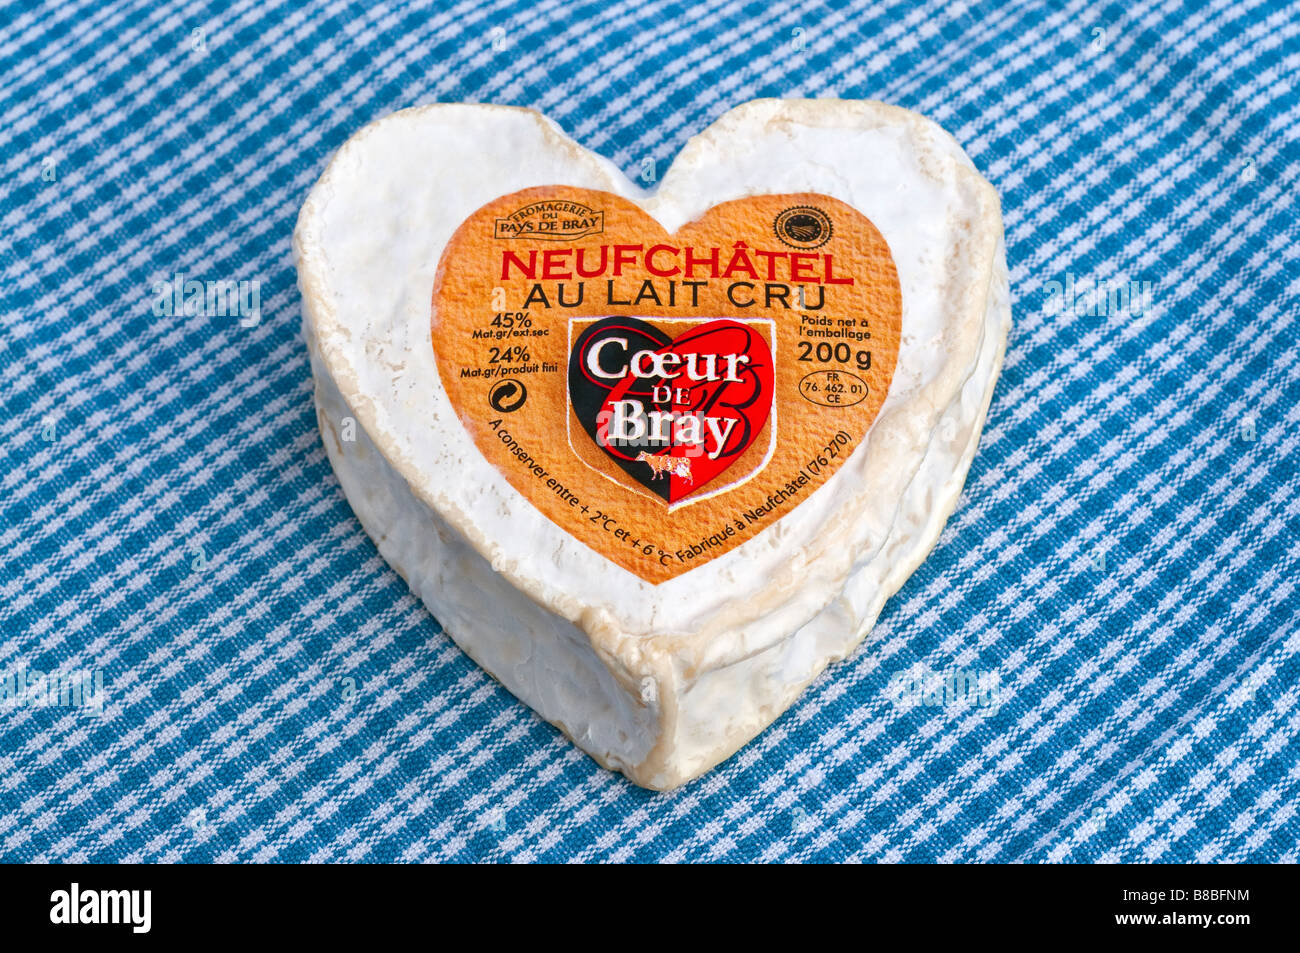 French heart shaped Neufchatel / Normandy fresh soft cheese on linen cloth. - Stock Image